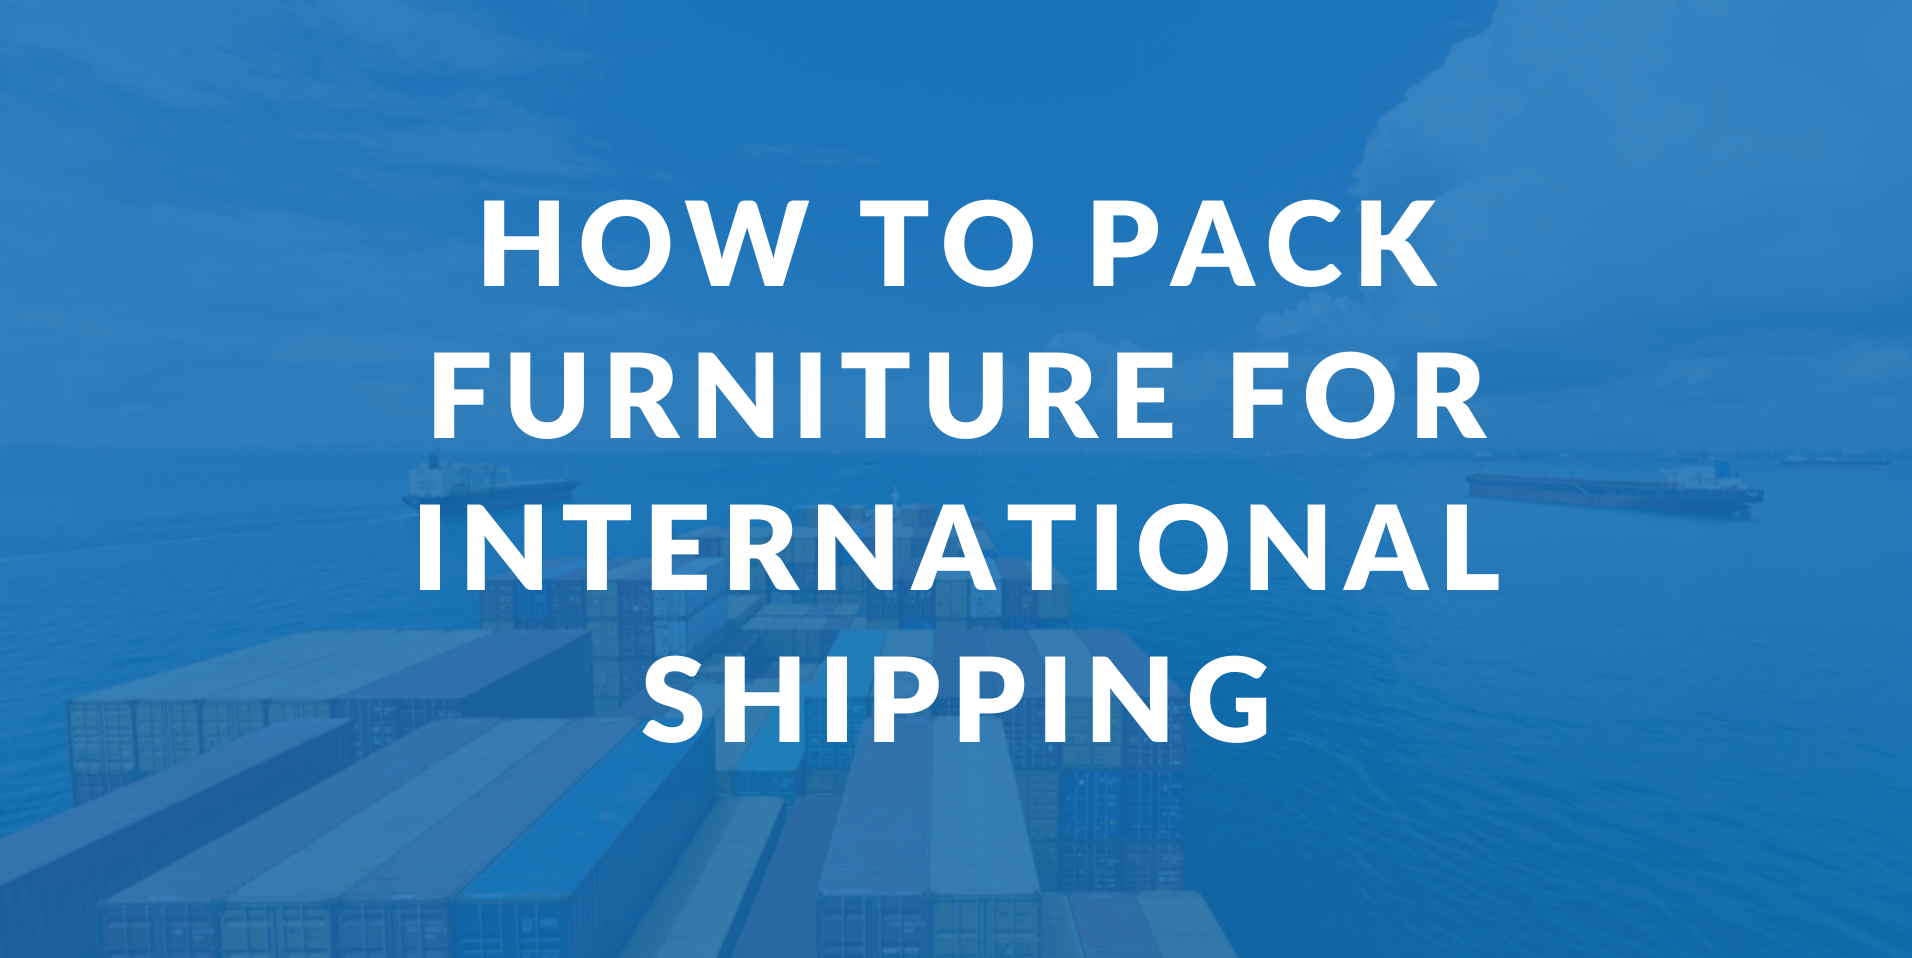 How to pack furniture for international shipping